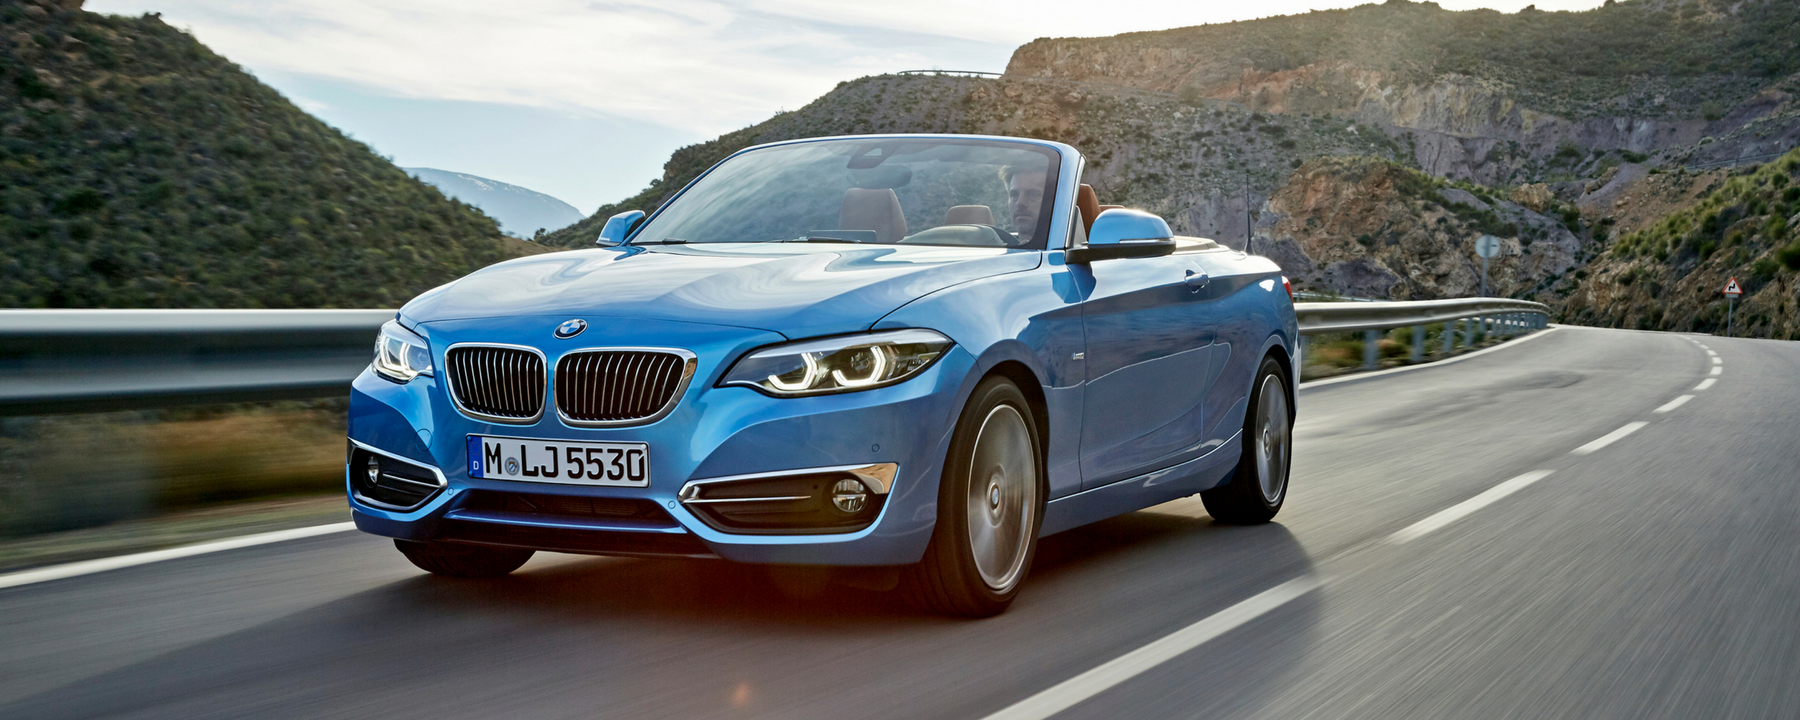 BMW_Convertible_2Series